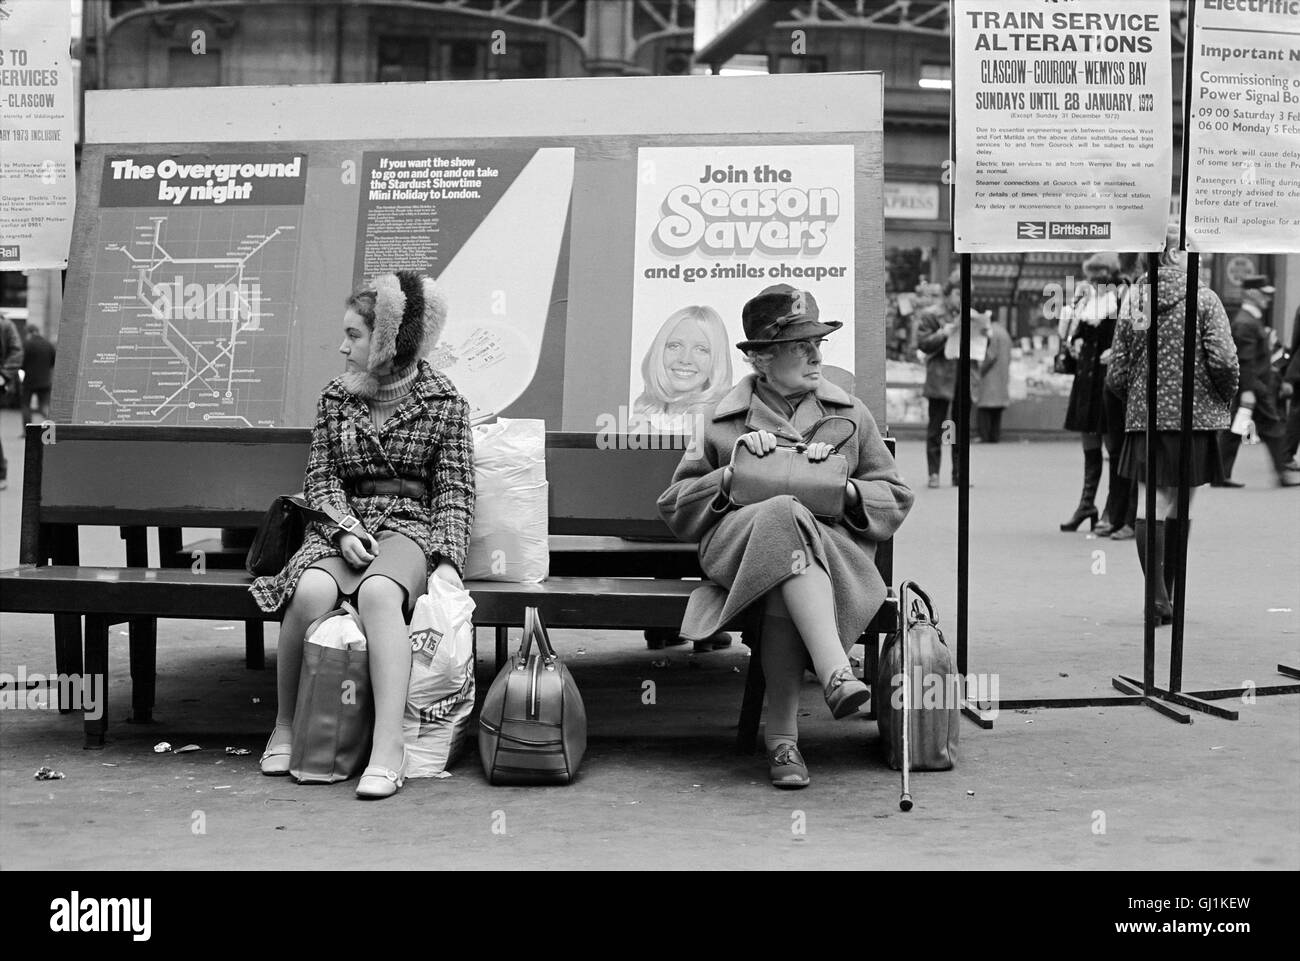 Waiting for the train in Central Station Glasgow, 1972 approx - Stock Image